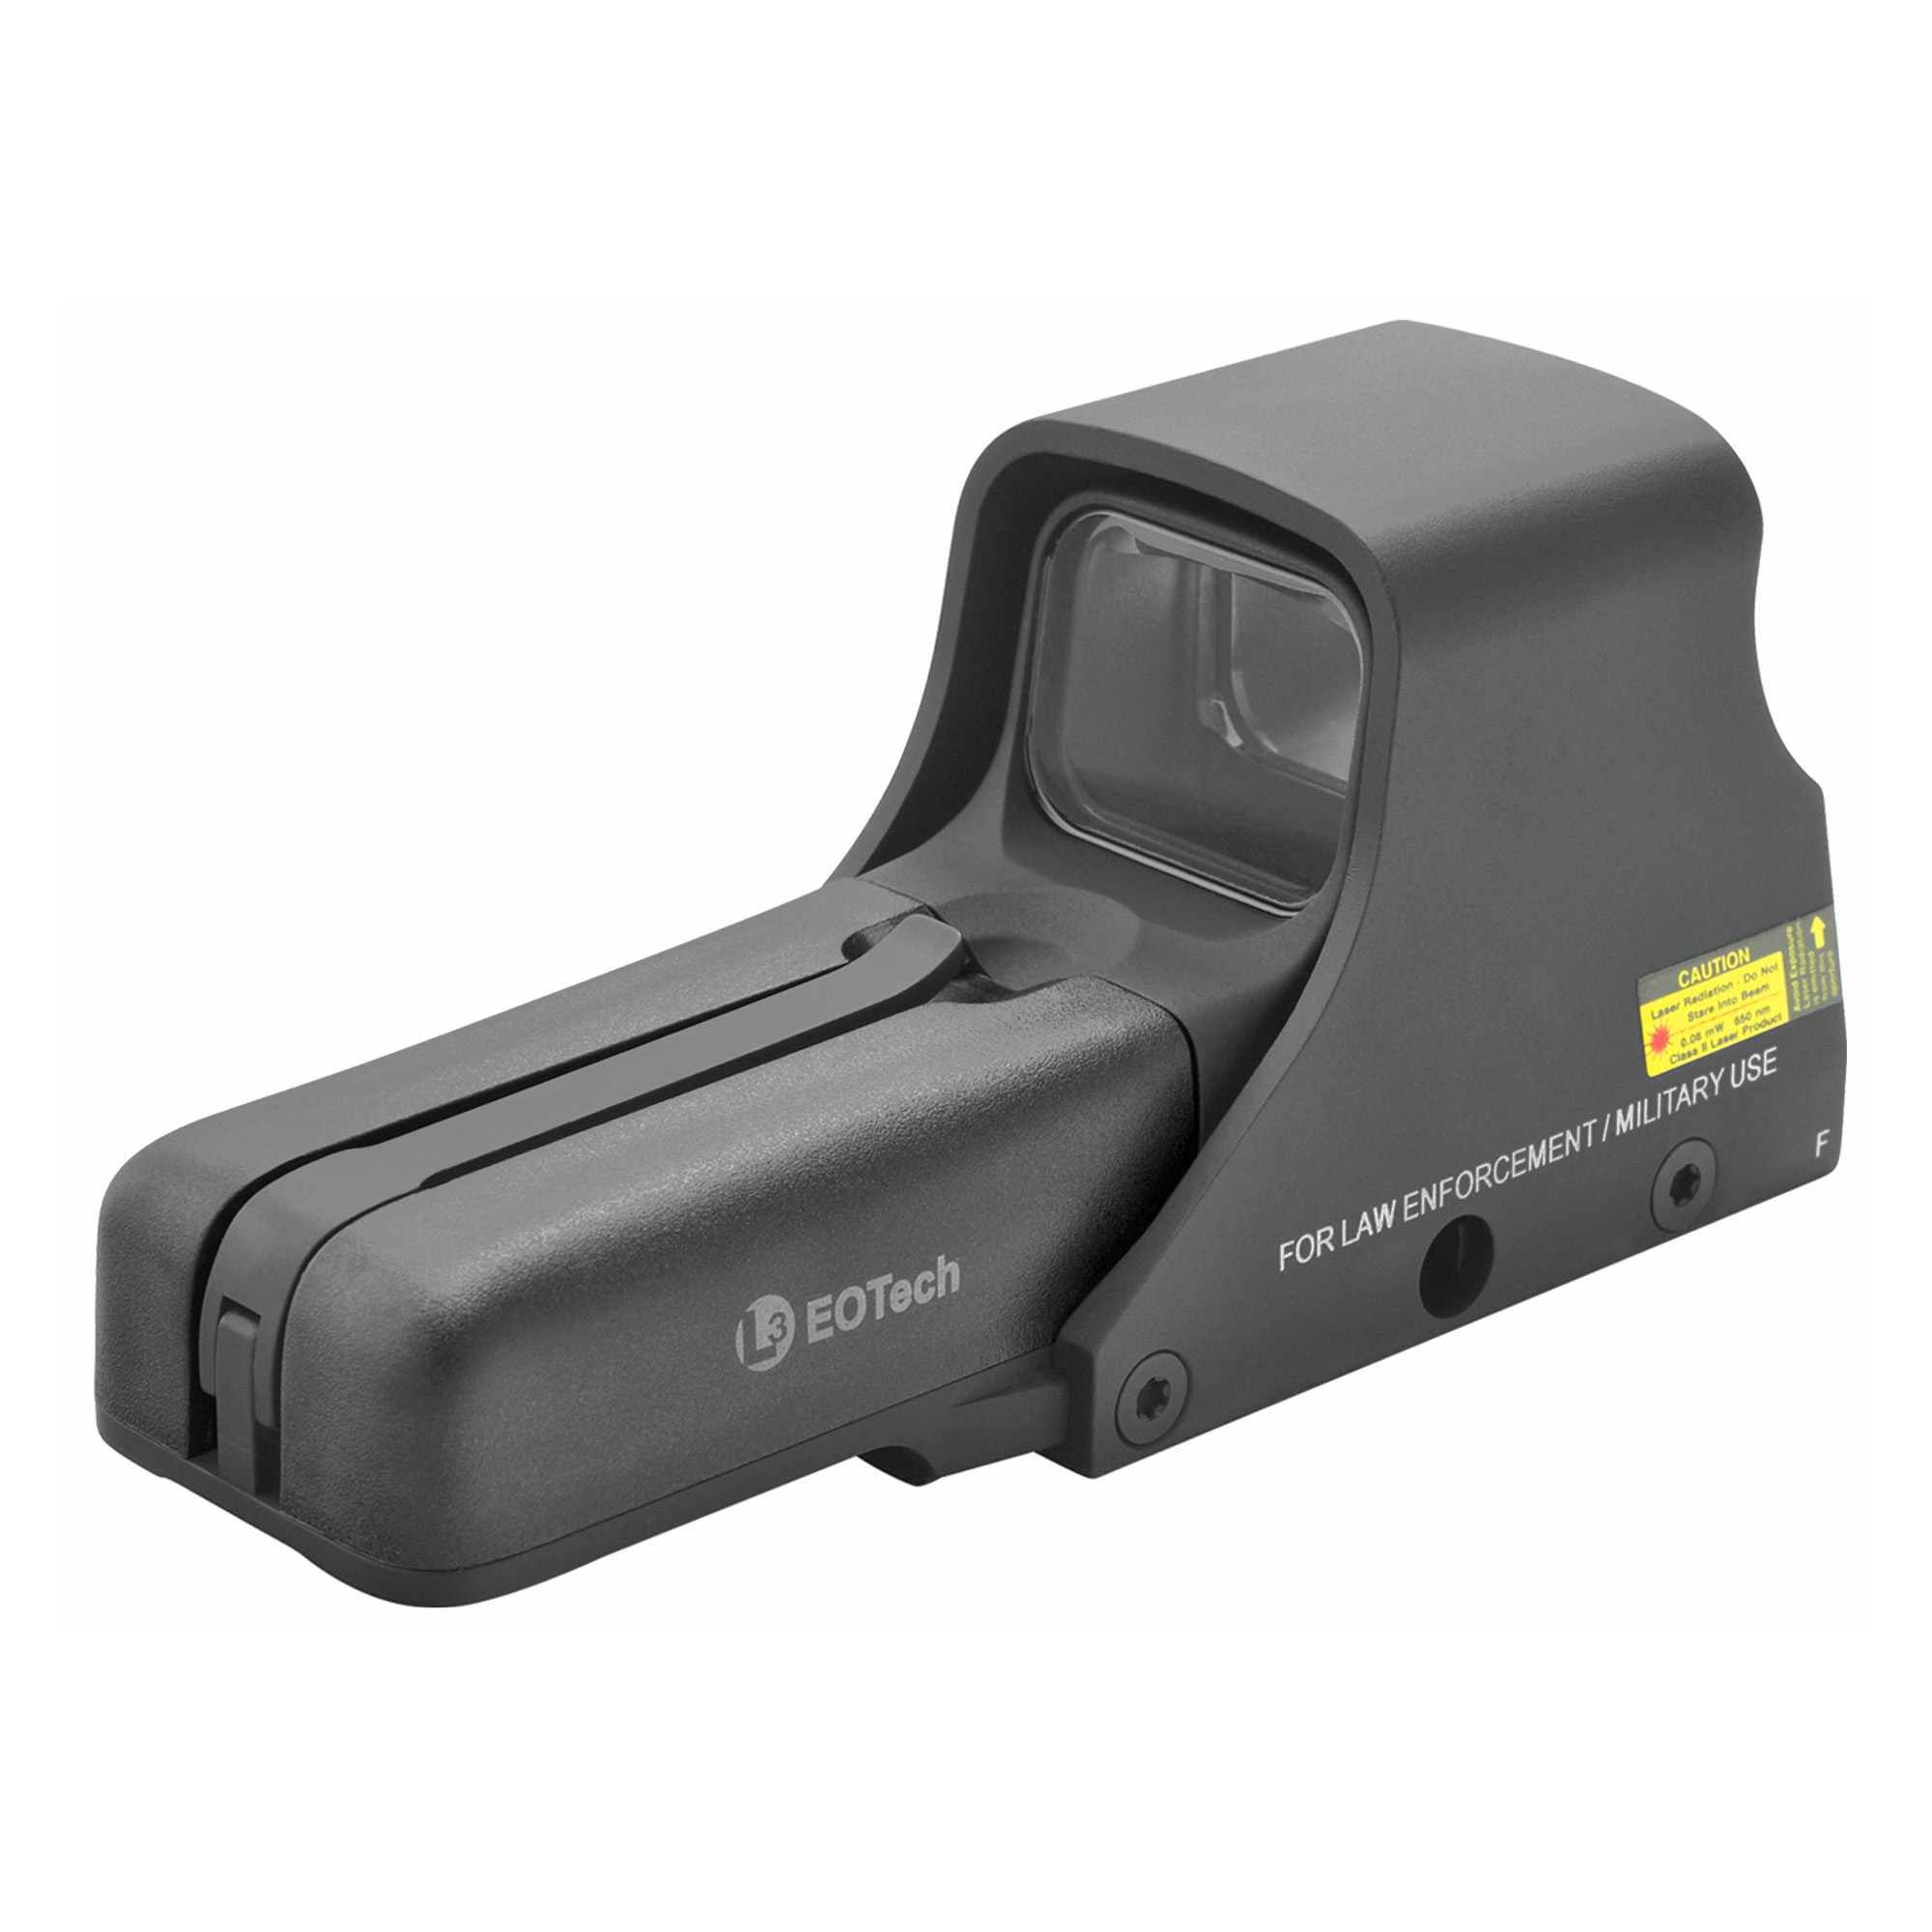 Are you a sportsman interested in hunting with night vision? Give the 552 another look. The 552 is EOTech's most affordable night vision-compatible sight and it partners with most night vision-devices. The 552 is designed to increase your speed to target even after the sun goes down.